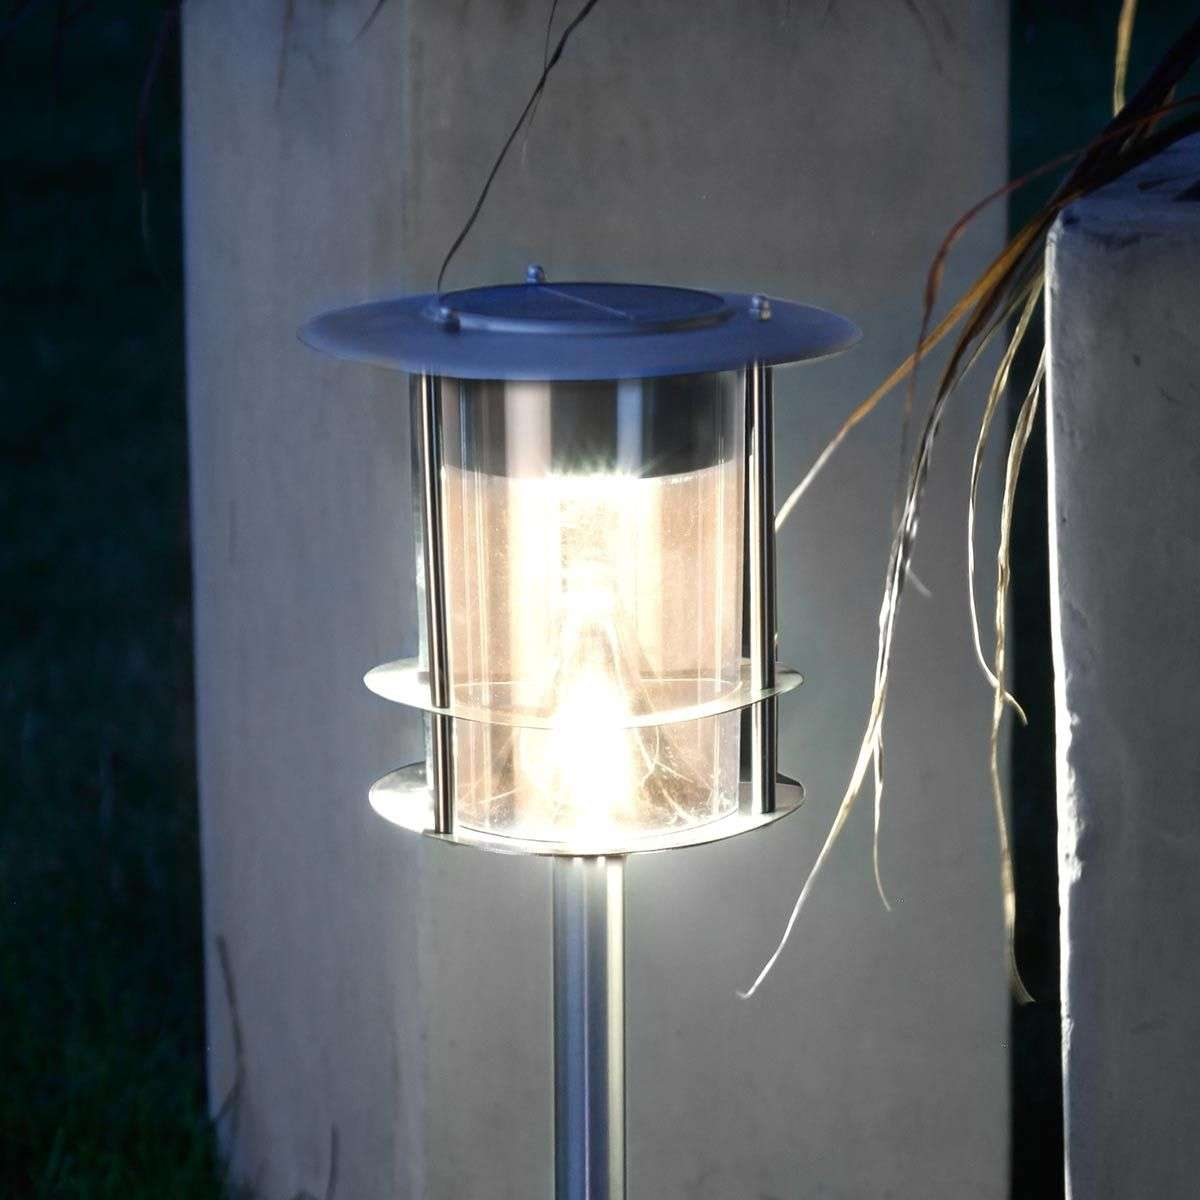 Outdoor Solar Lights In Ground: With Ground Spike - LED Solar Light Garden Stick